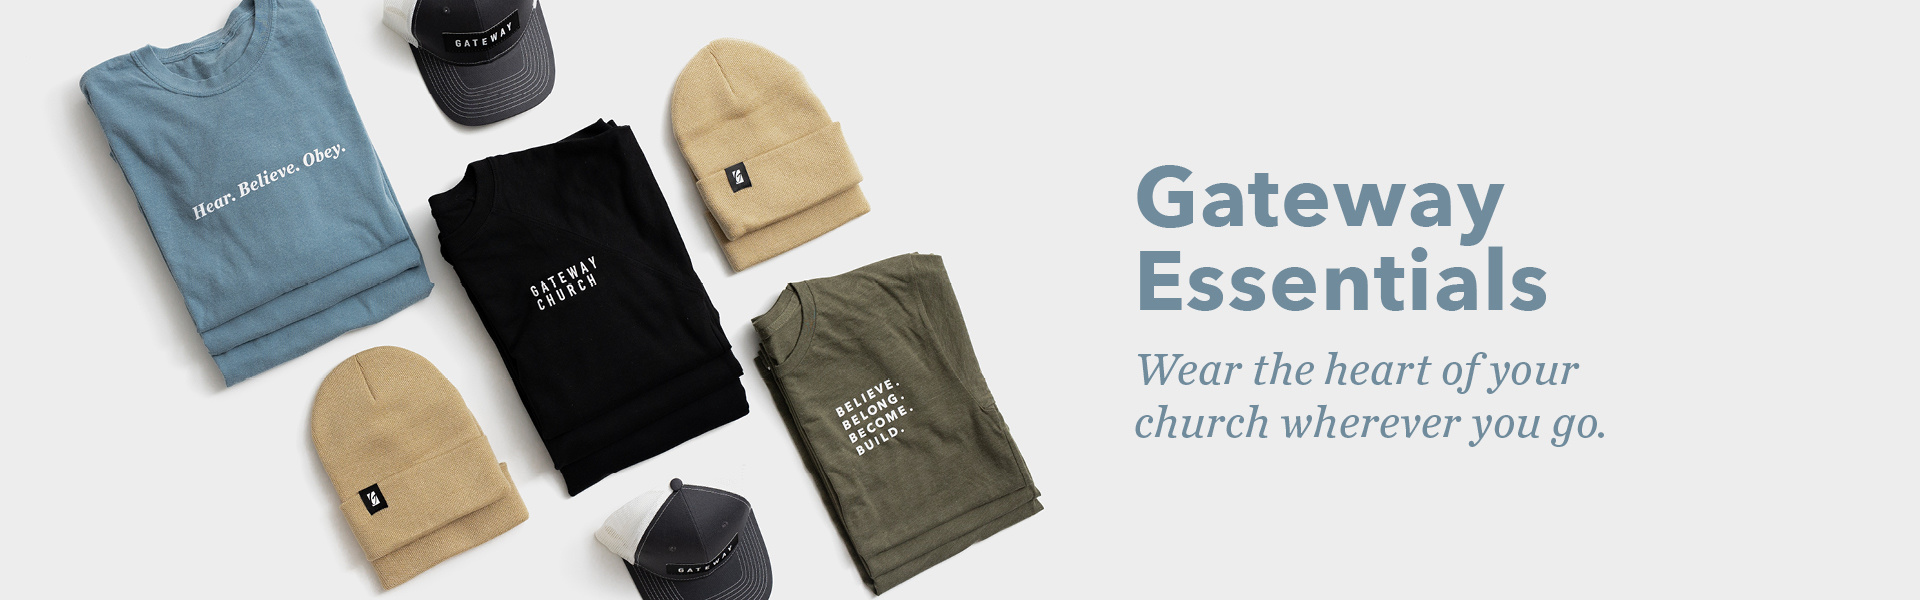 Gateway Essentials